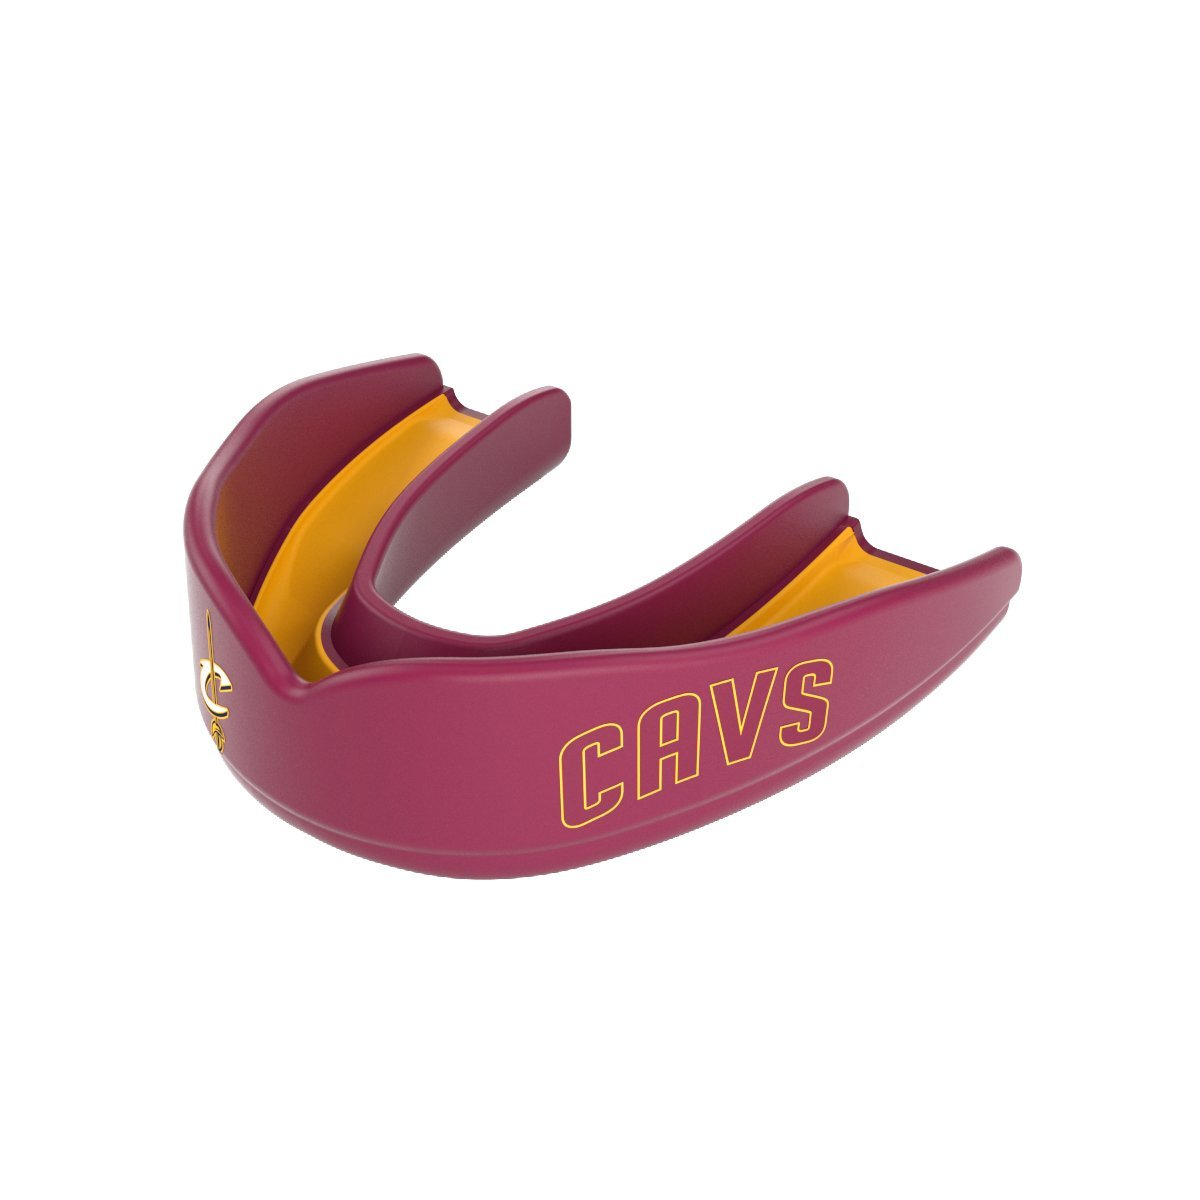 Shock Doctor 8303-2511Y NBA Cleveland Cavaliers Basketball Mouth Guard, Wine/Gold, Youth